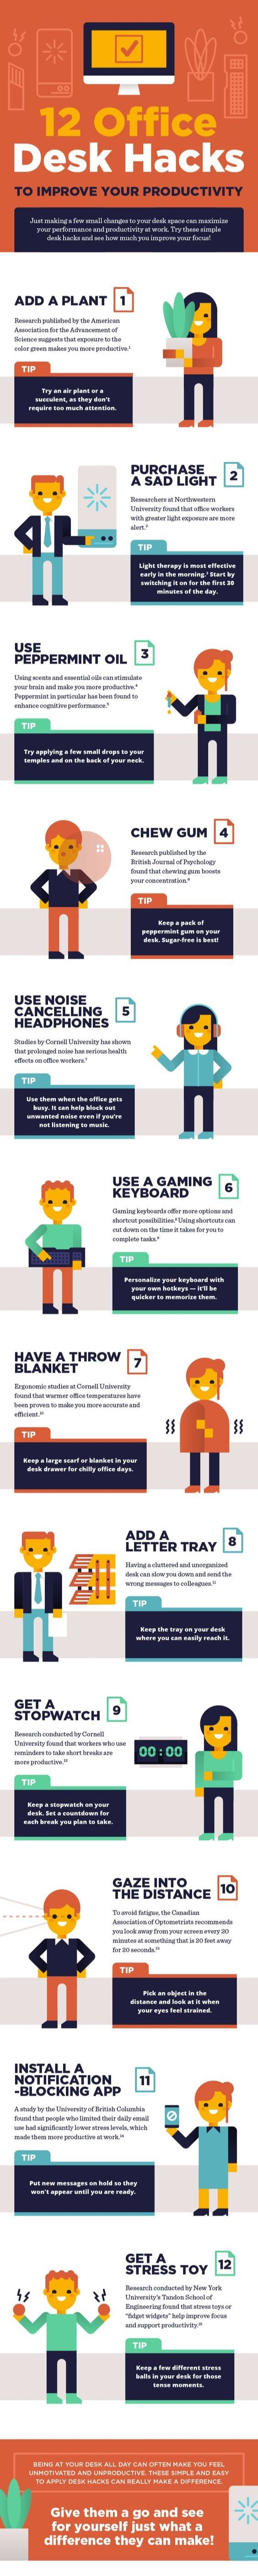 1. Add a Plant! 2. Purchase a better light 3. Use Peppermint Oil 4. Chew Gum 5. Use Noise Cancelling Headphones 6. Use a Gaming Keyboard 7. Have a Throw Blanket 8. Add a Letter Tray 9. Get a Stopwatch 10. Gaze into the Distance 11, Install a Notification-Blocking App 12. Get a Stress Toy